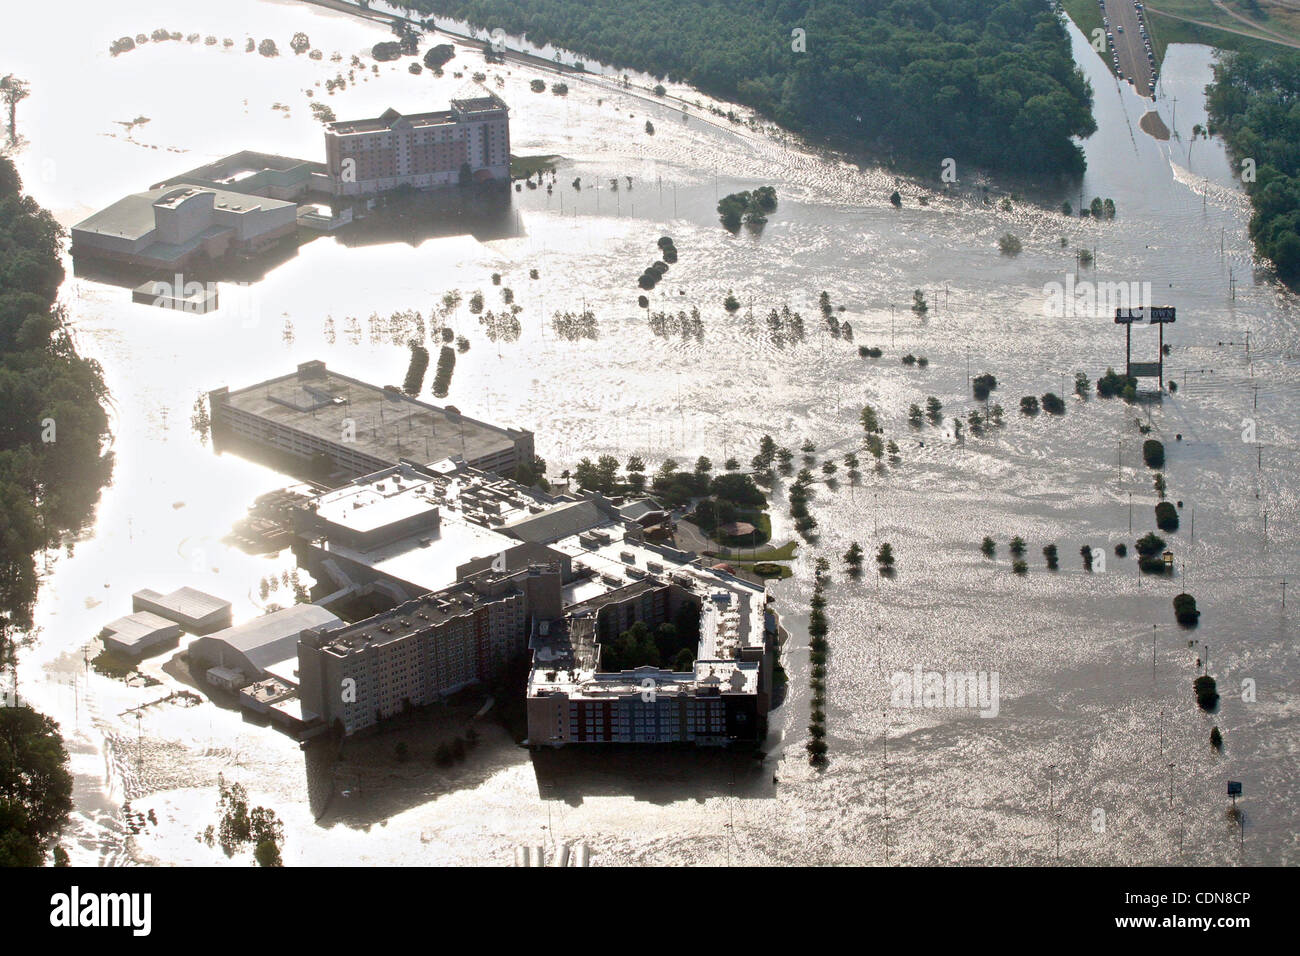 May 10, 2011 - Tunica, Mississippi, U S  - Casinos sit flooded by